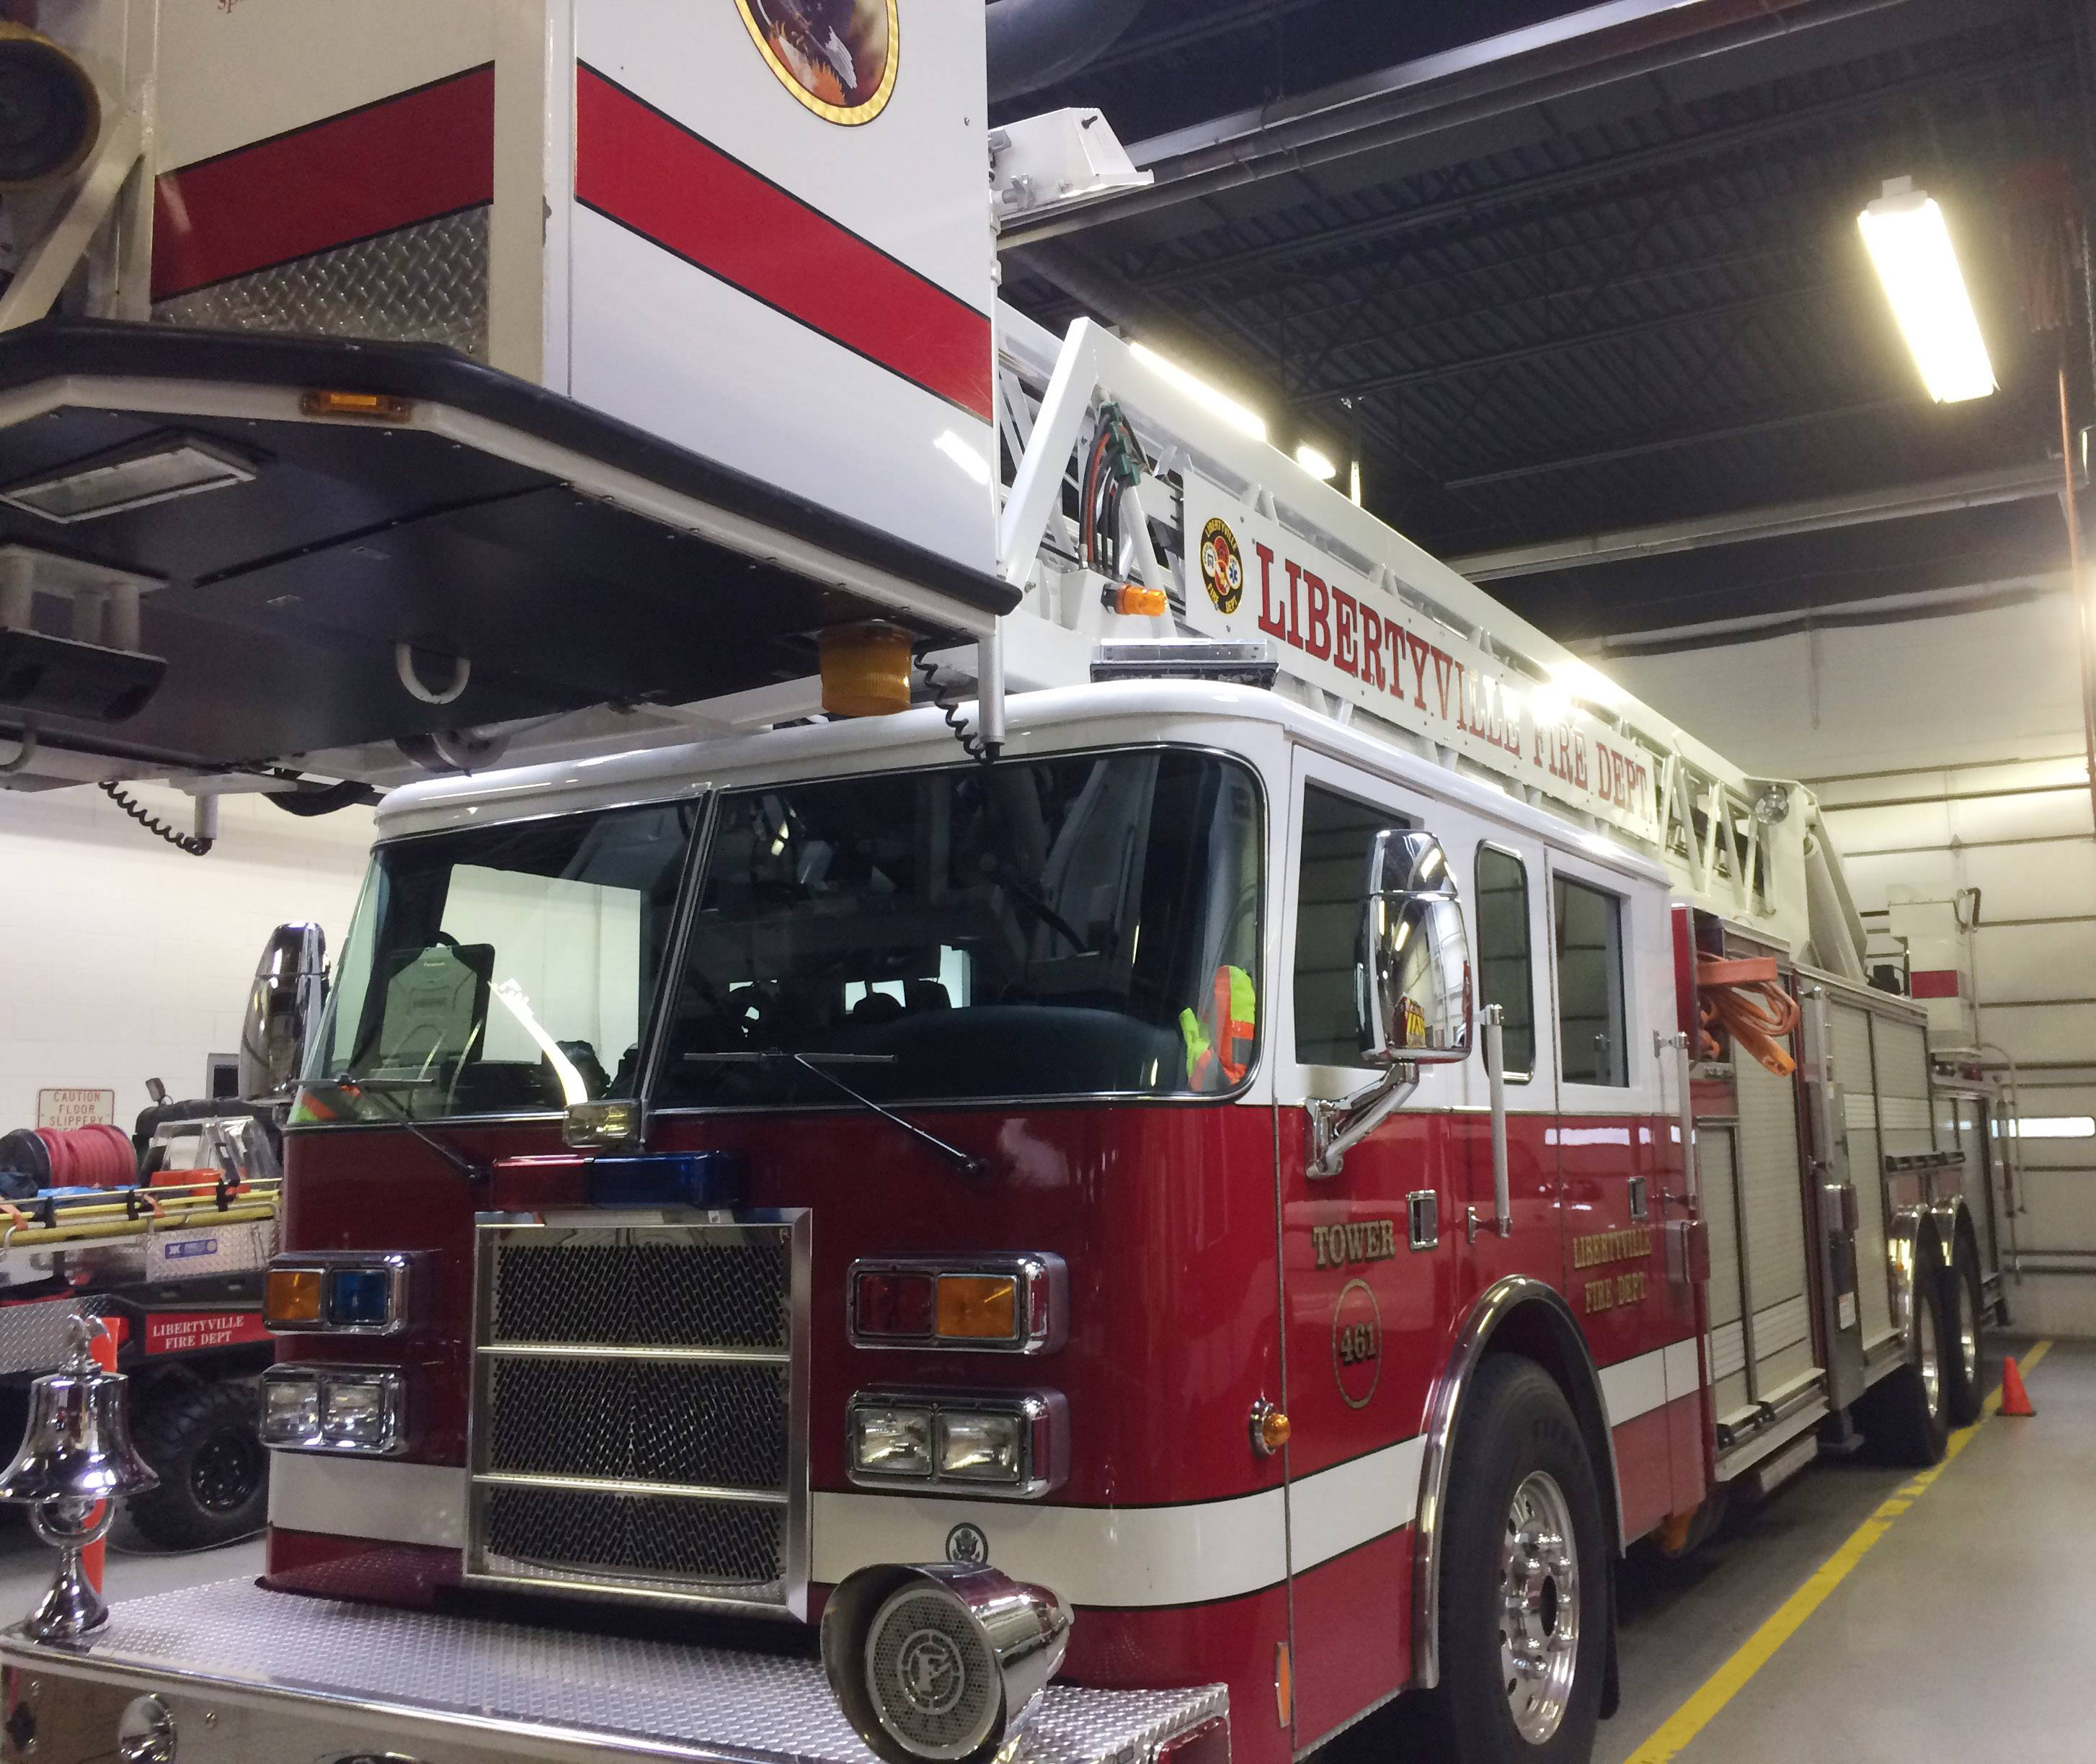 Libertyville and Mundelein have approved an agreement that would provide for sharing a ladder fire truck.